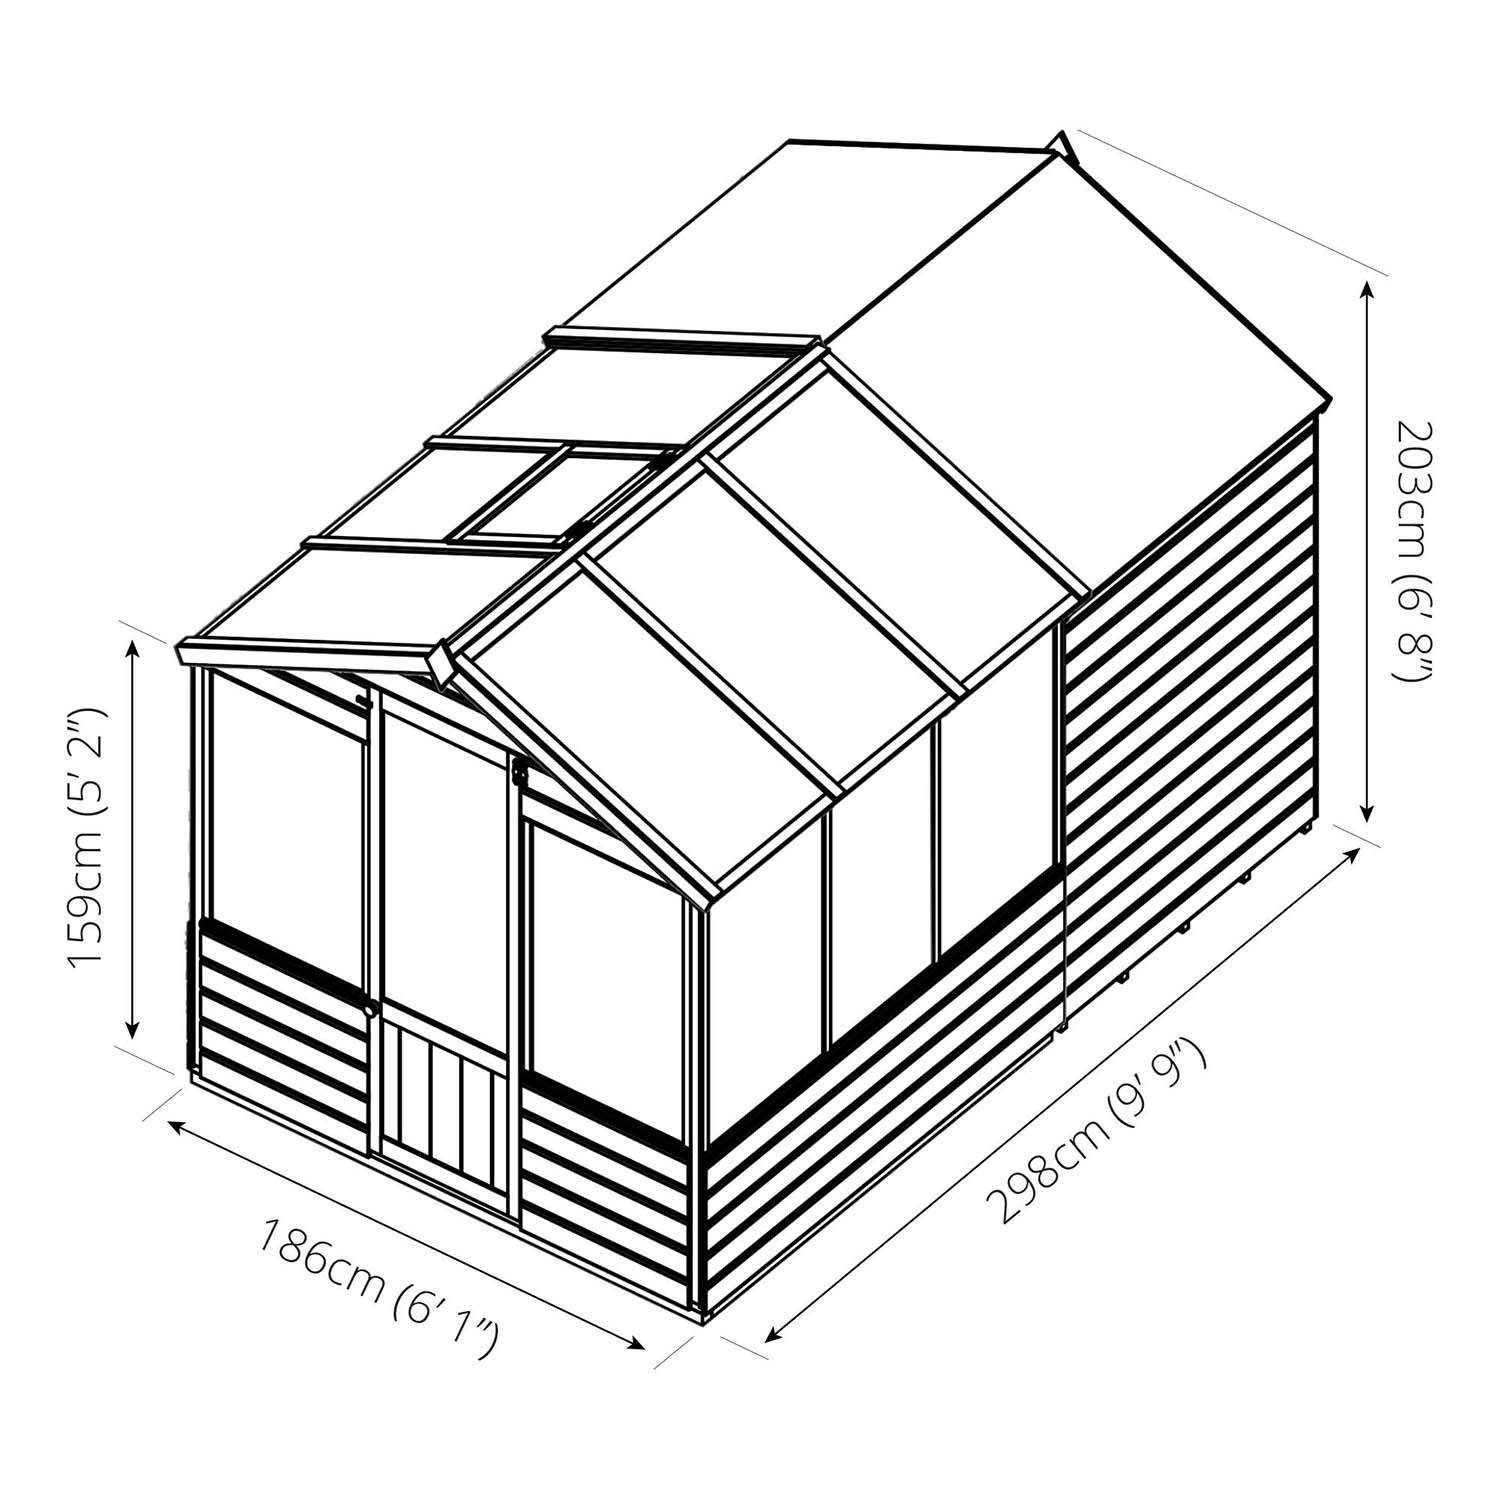 1500x1500 Winchester 10ft X 6ft Shiplap Combi Greenhouse With Shed Next